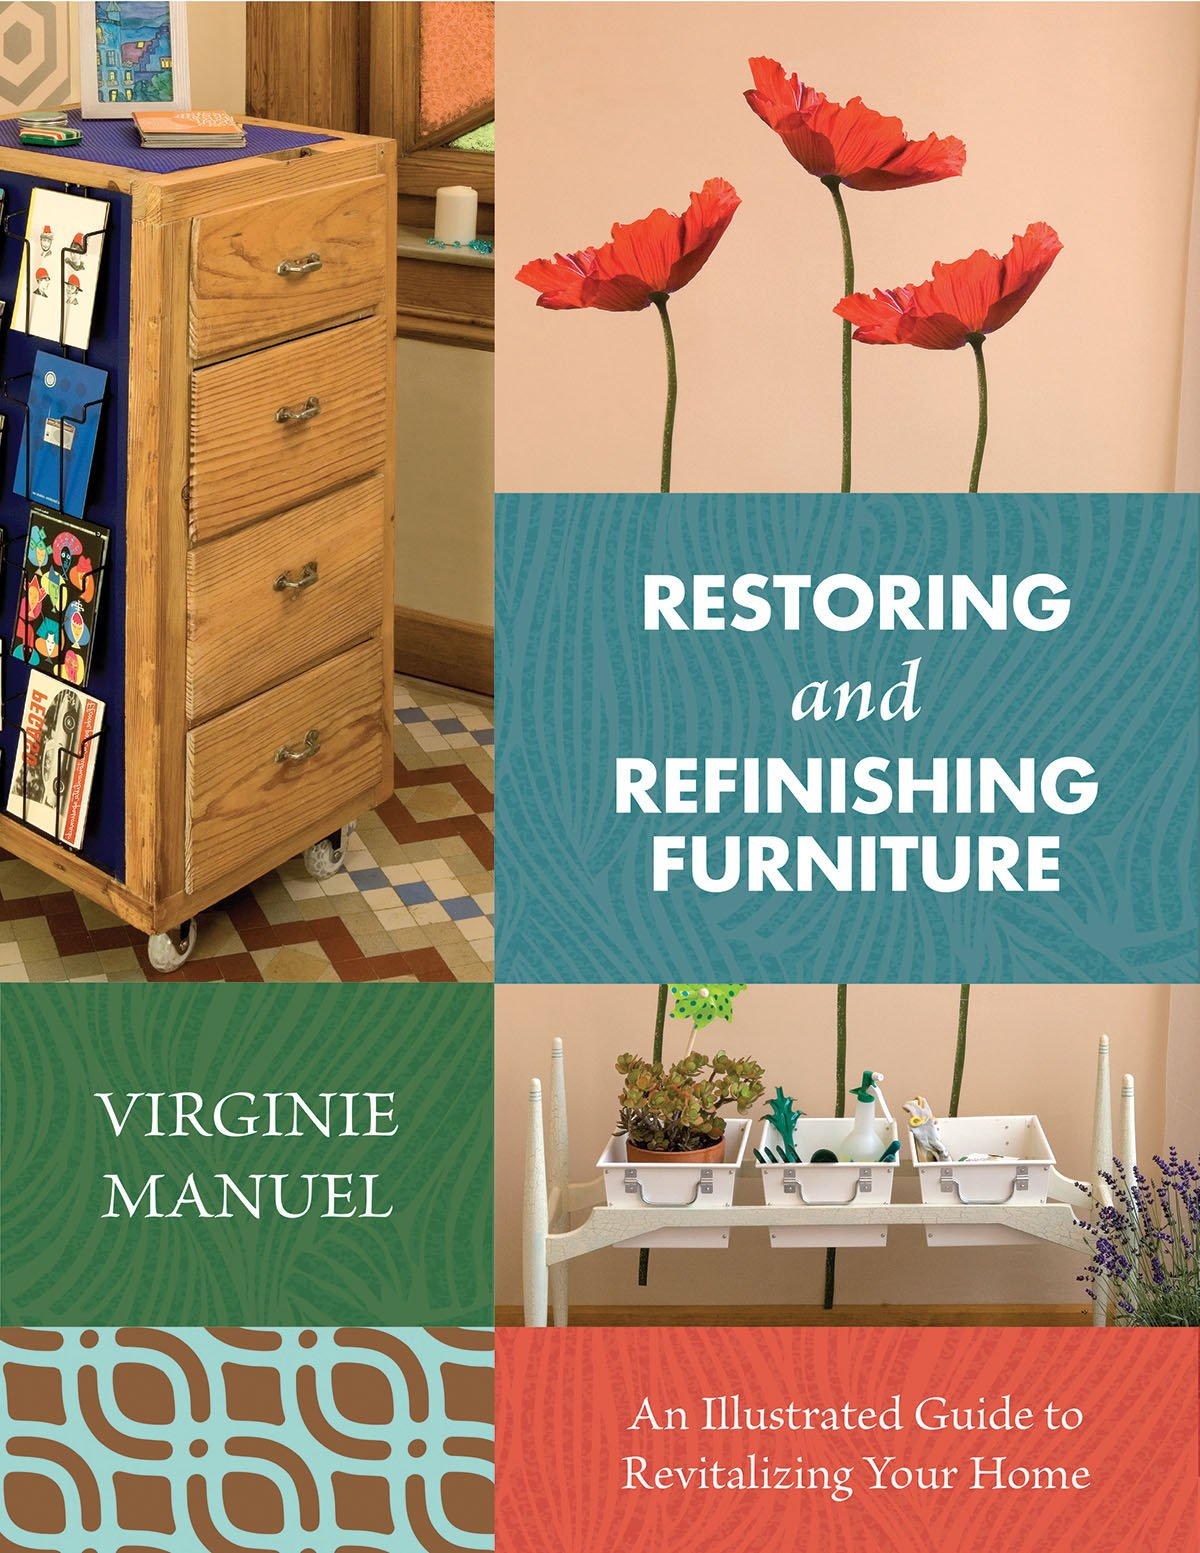 Restoring and Refinishing Furniture: An Illustrated Guide to Revitalizing  Your Home: Virginie Manuel: 9781634504553: Amazon.com: Books